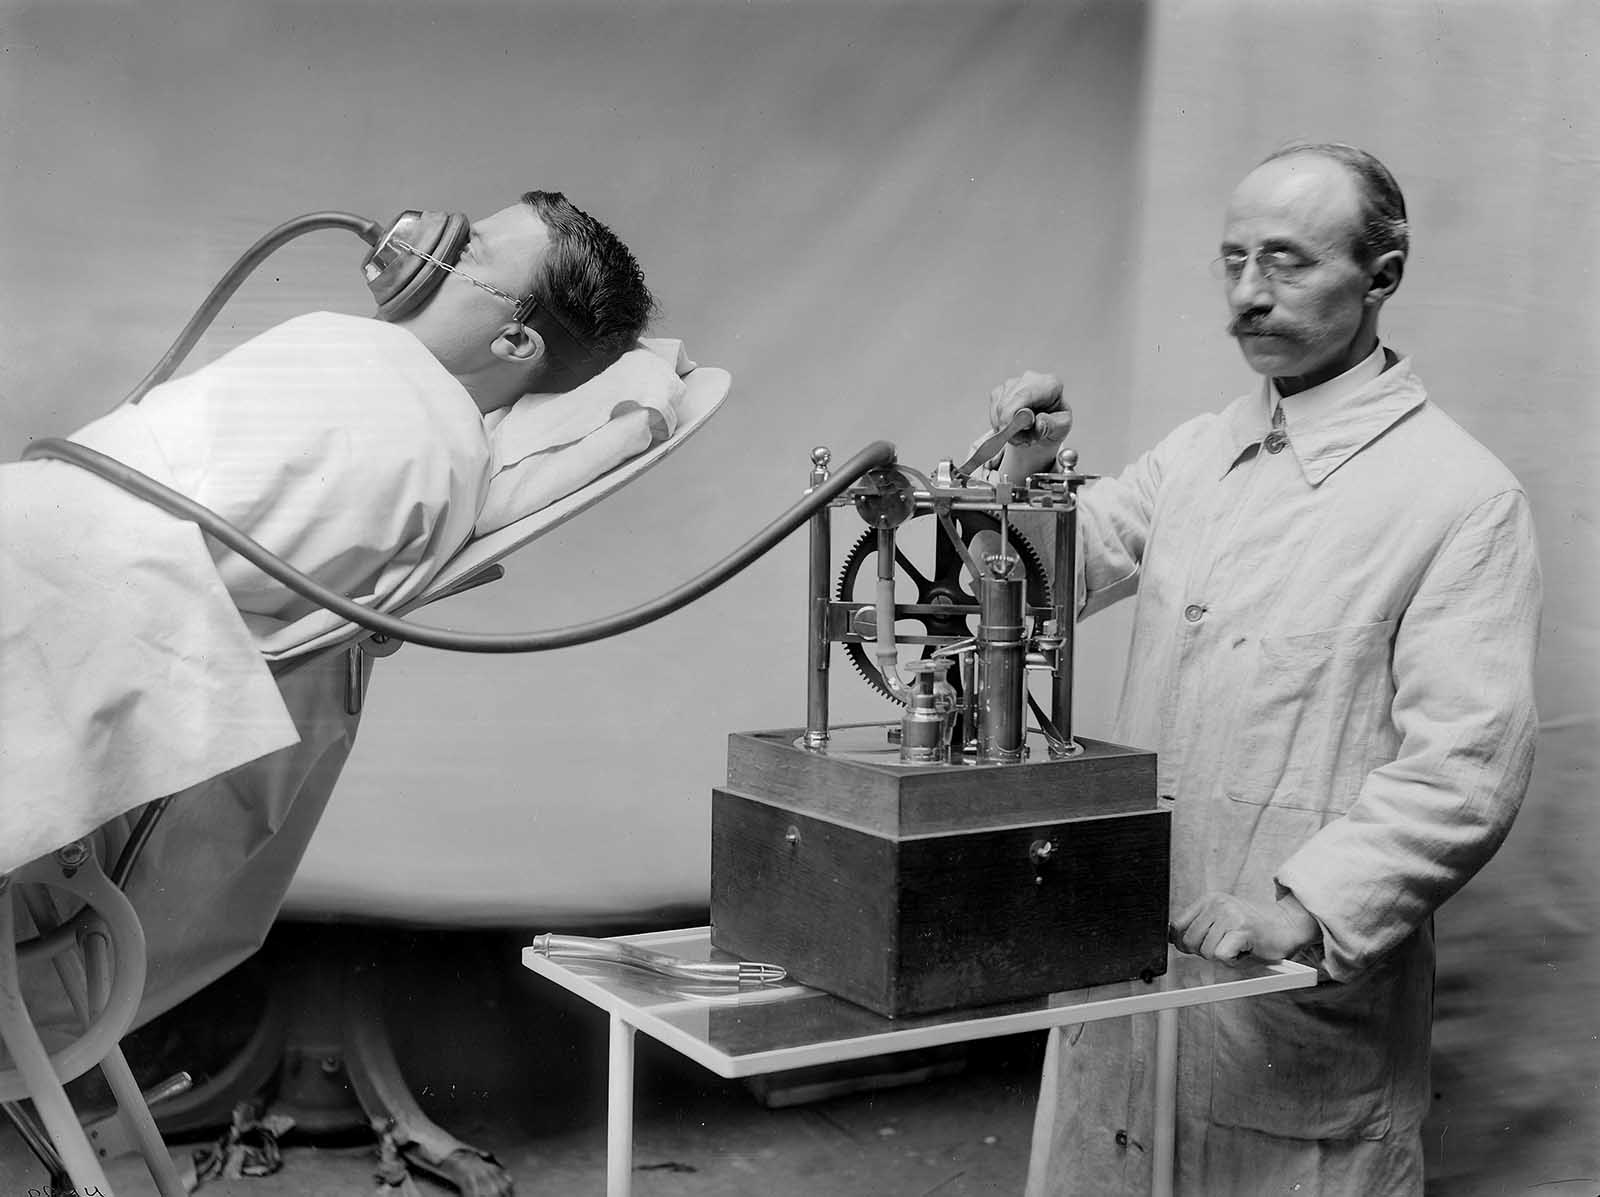 R. Dubois anesthetizing machine in France, circa 1913.